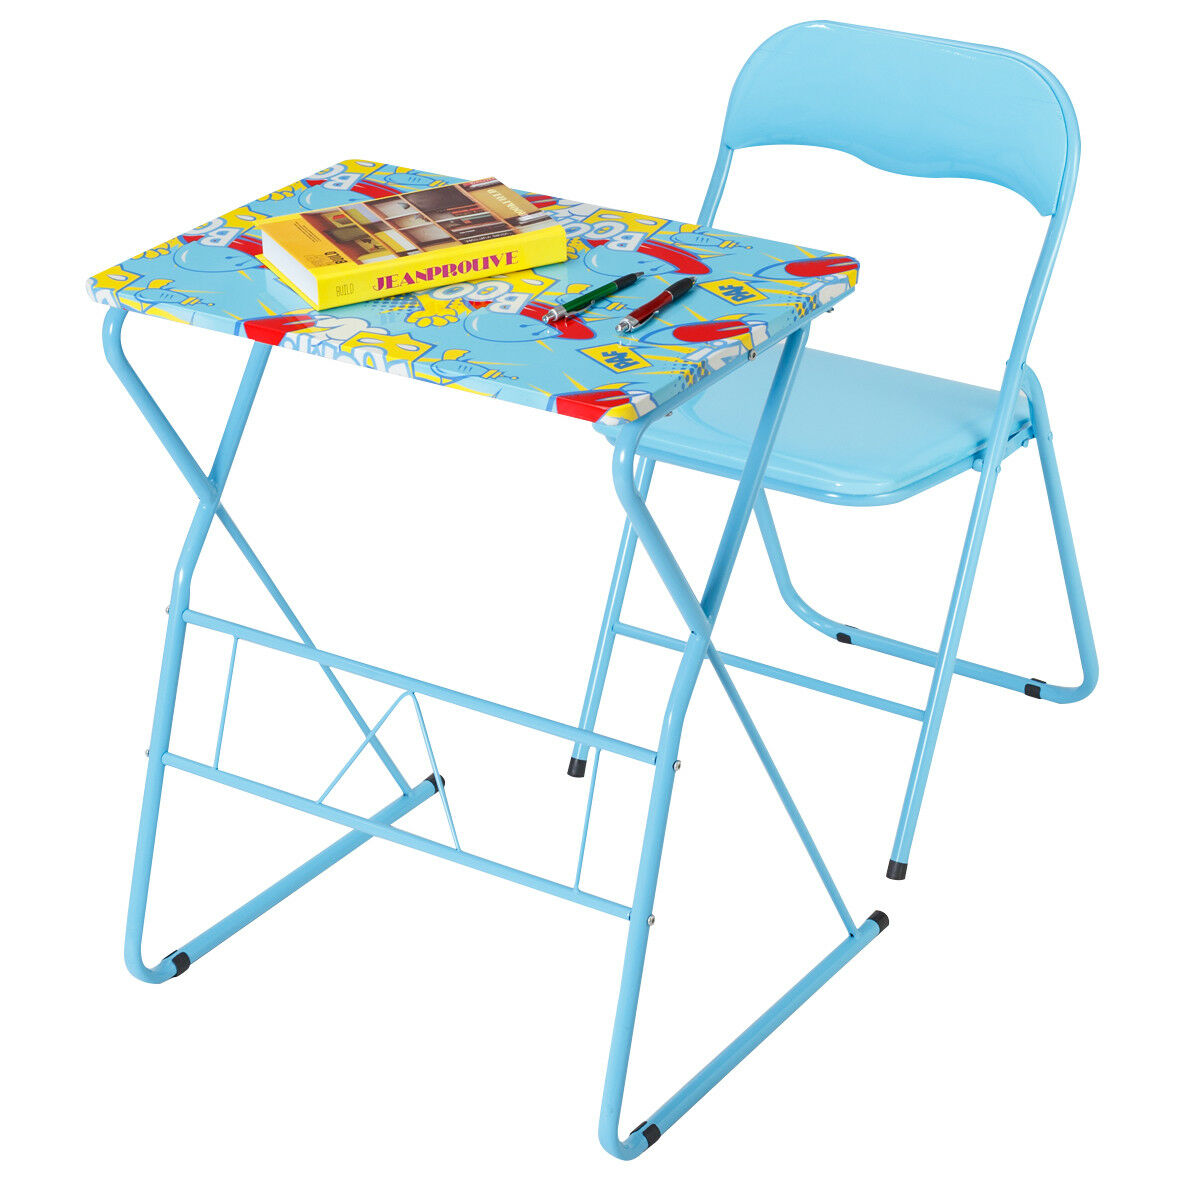 Kids Studying Table Chair Set Foldable Classroom Home Writing Playing Desk